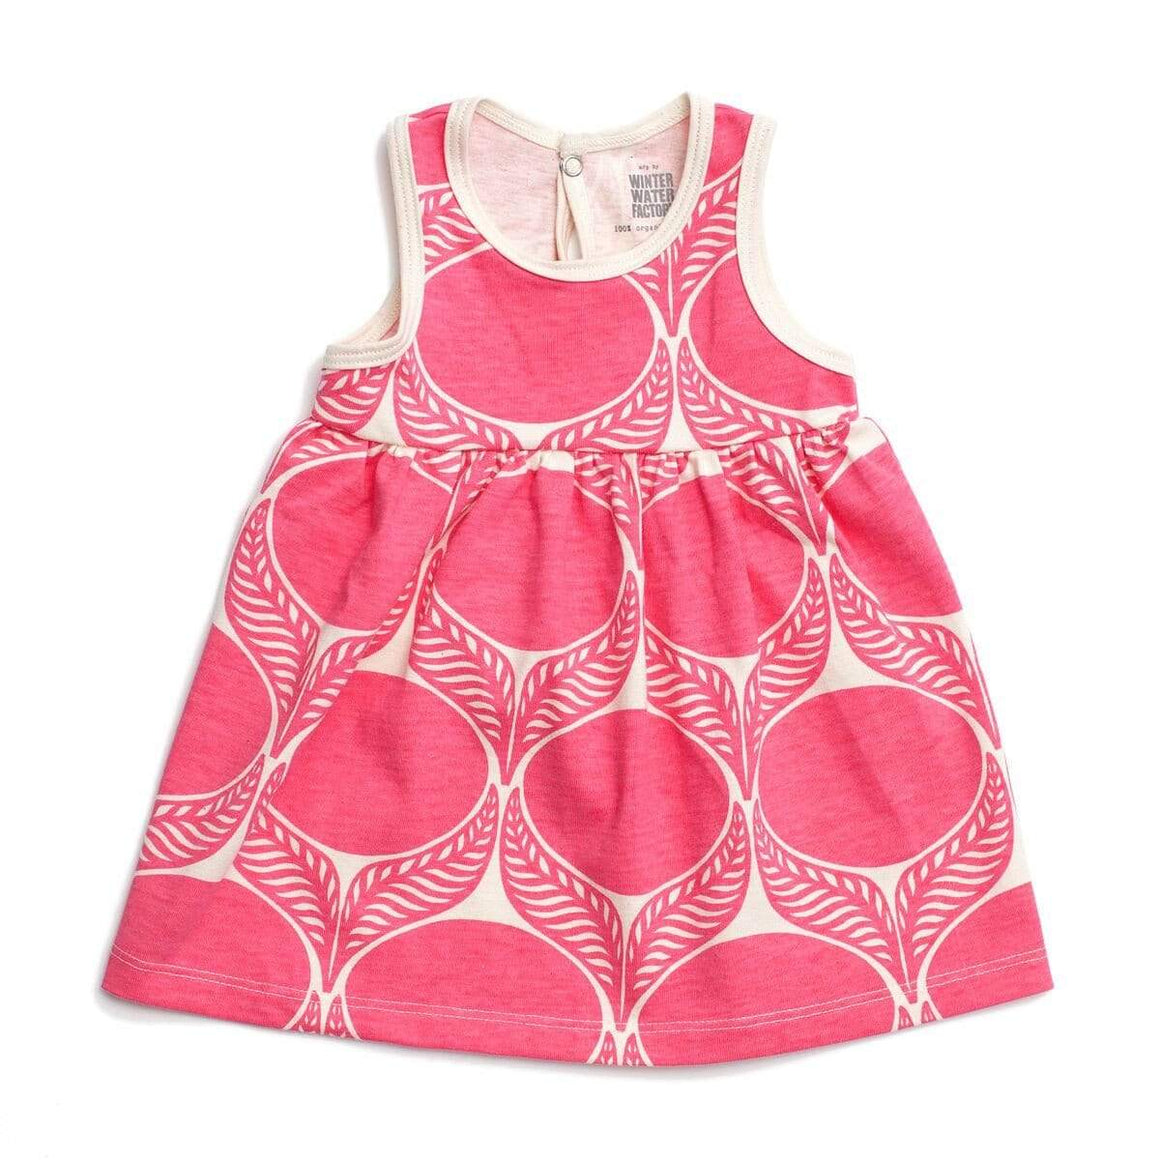 Winter Water Factory- Organic Cotton June Leaf Pink Oslo Dress (3 Months) Dress Winter Water Factory